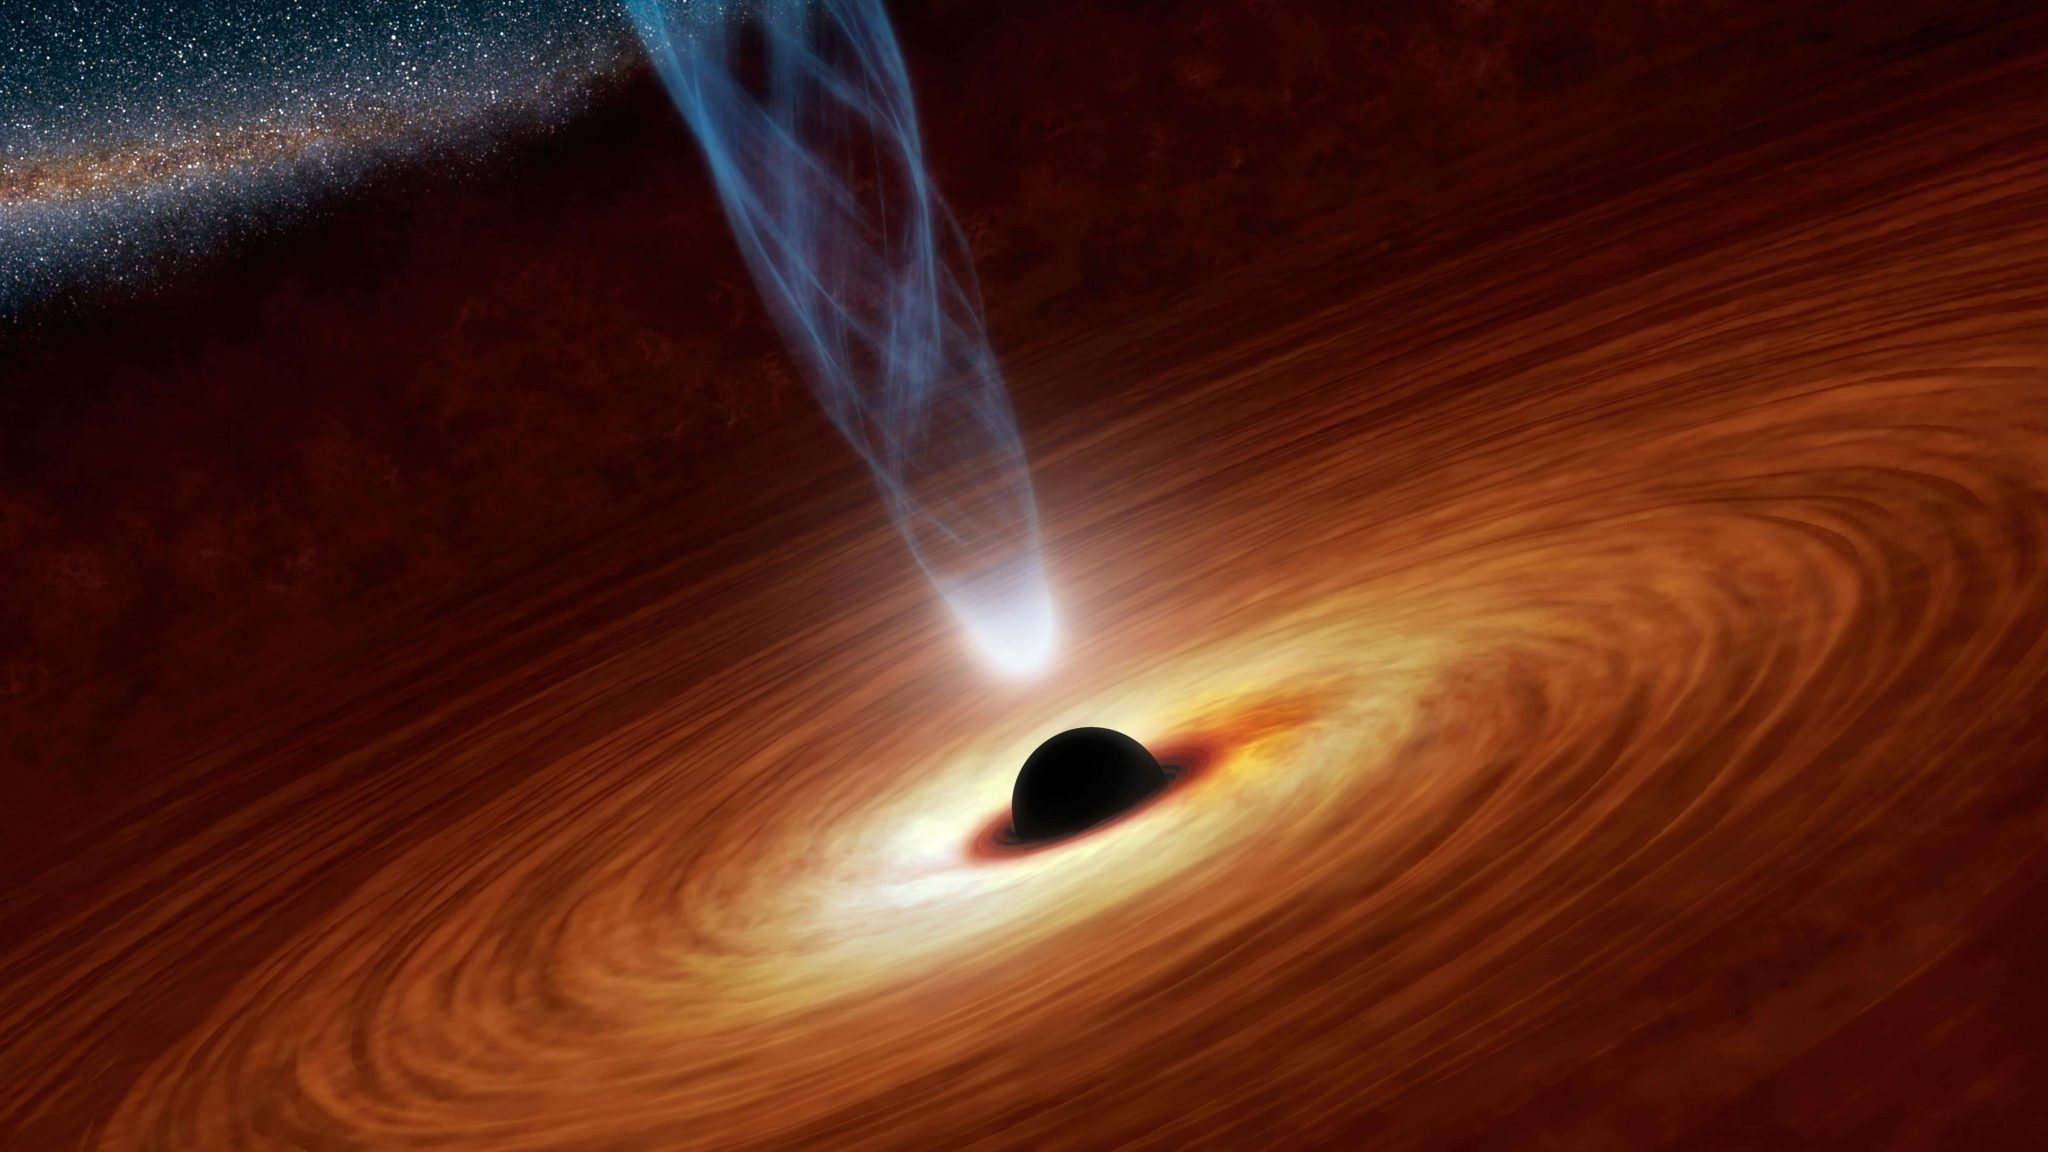 Supermassive-Black-Hole-Spins-at-Nearly-the-Speed-of-Light-2